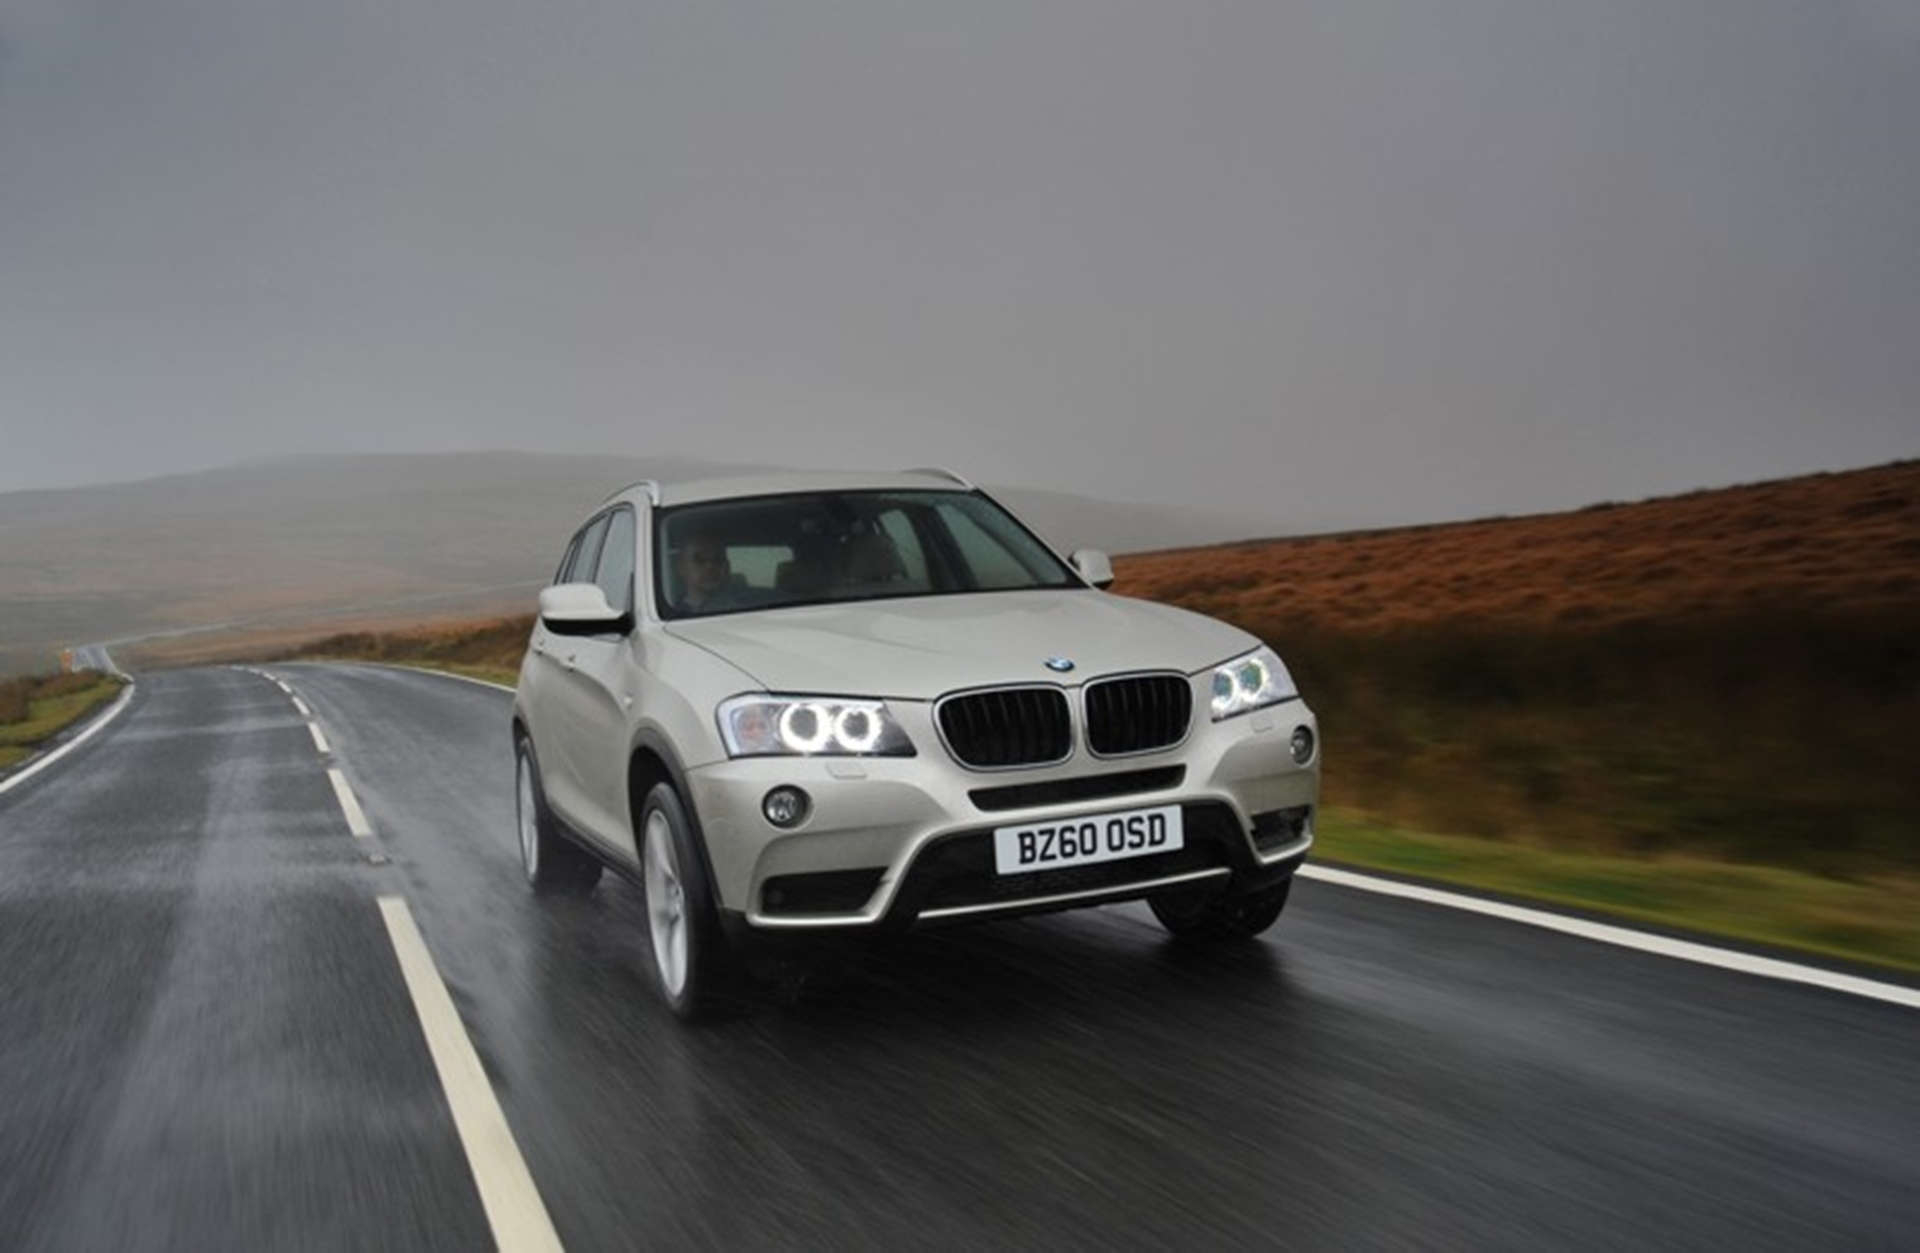 BMW X3 named What Car? 'Best SUV' 2012